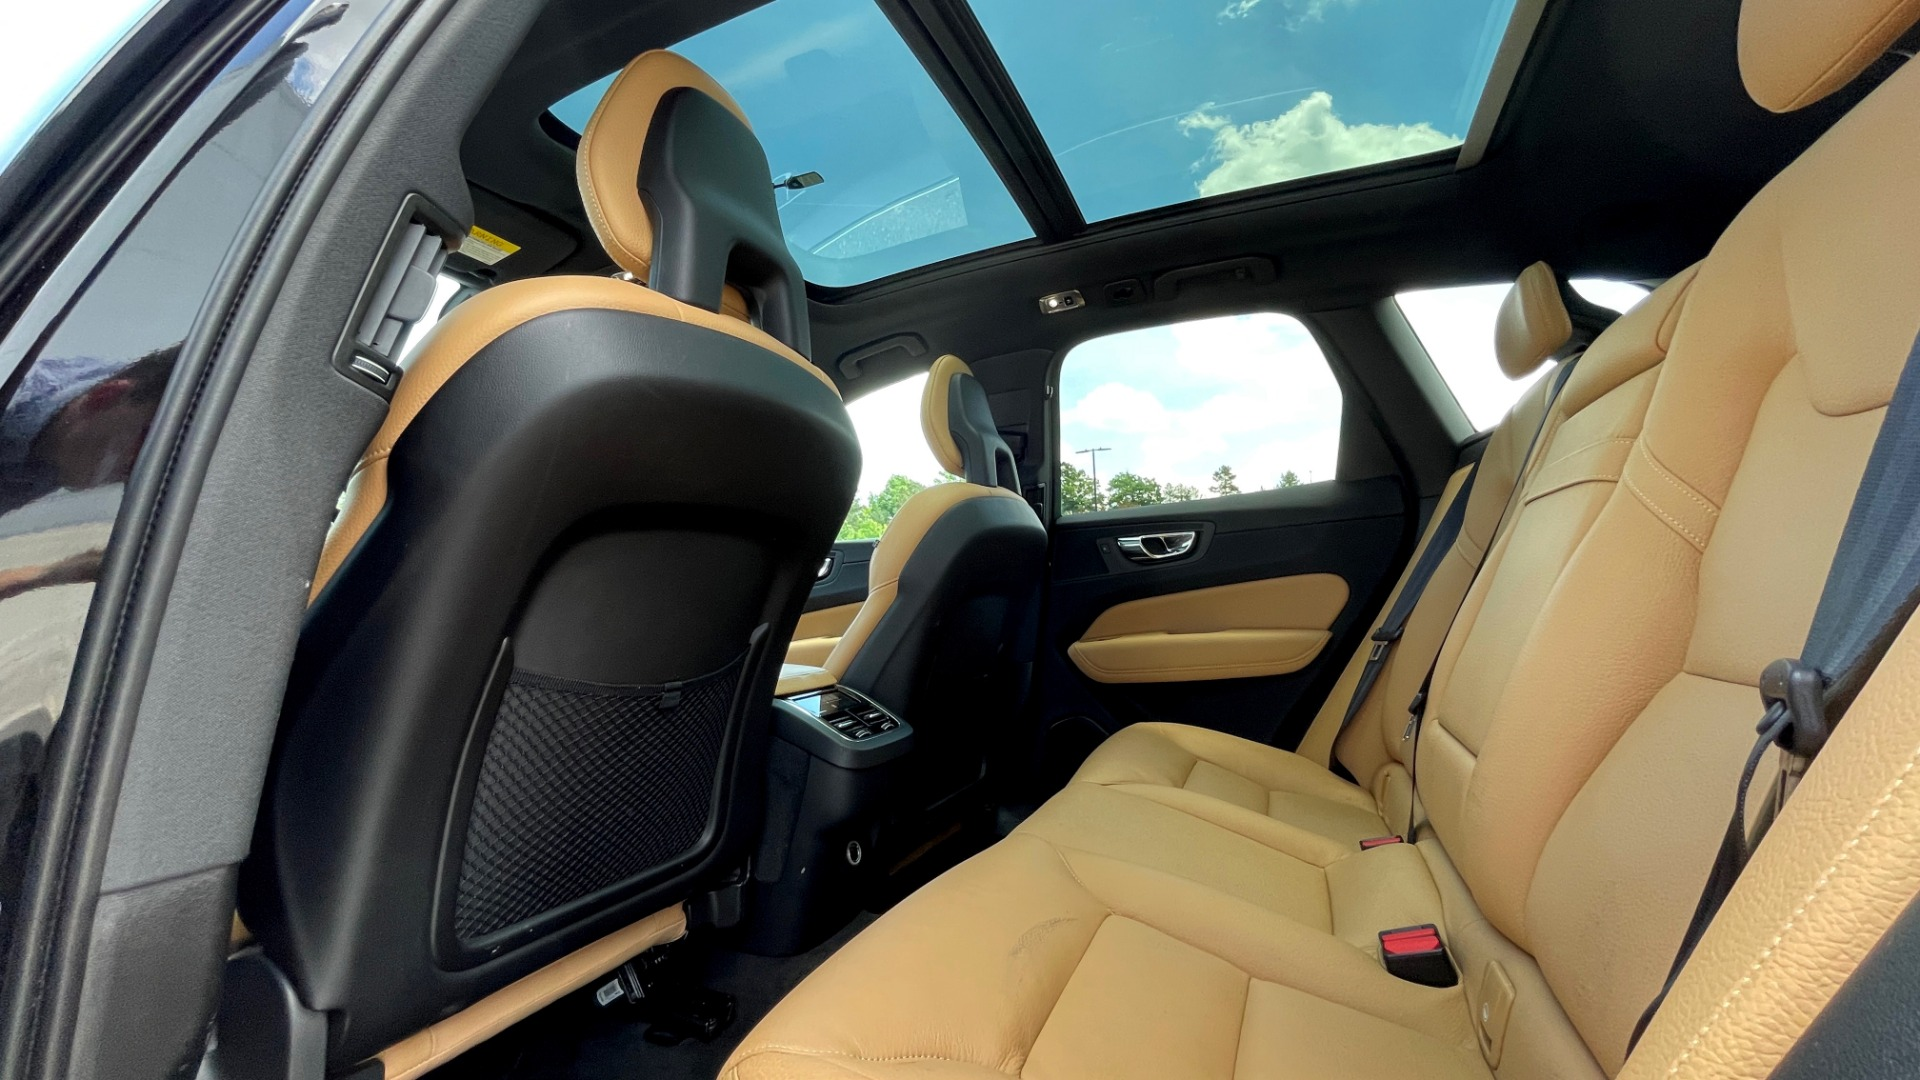 Used 2018 Volvo XC60 INSCRIPTION 2.0L TURBO SUV / AWD / NAV / SUNROOF / REARVIEW for sale $38,795 at Formula Imports in Charlotte NC 28227 64